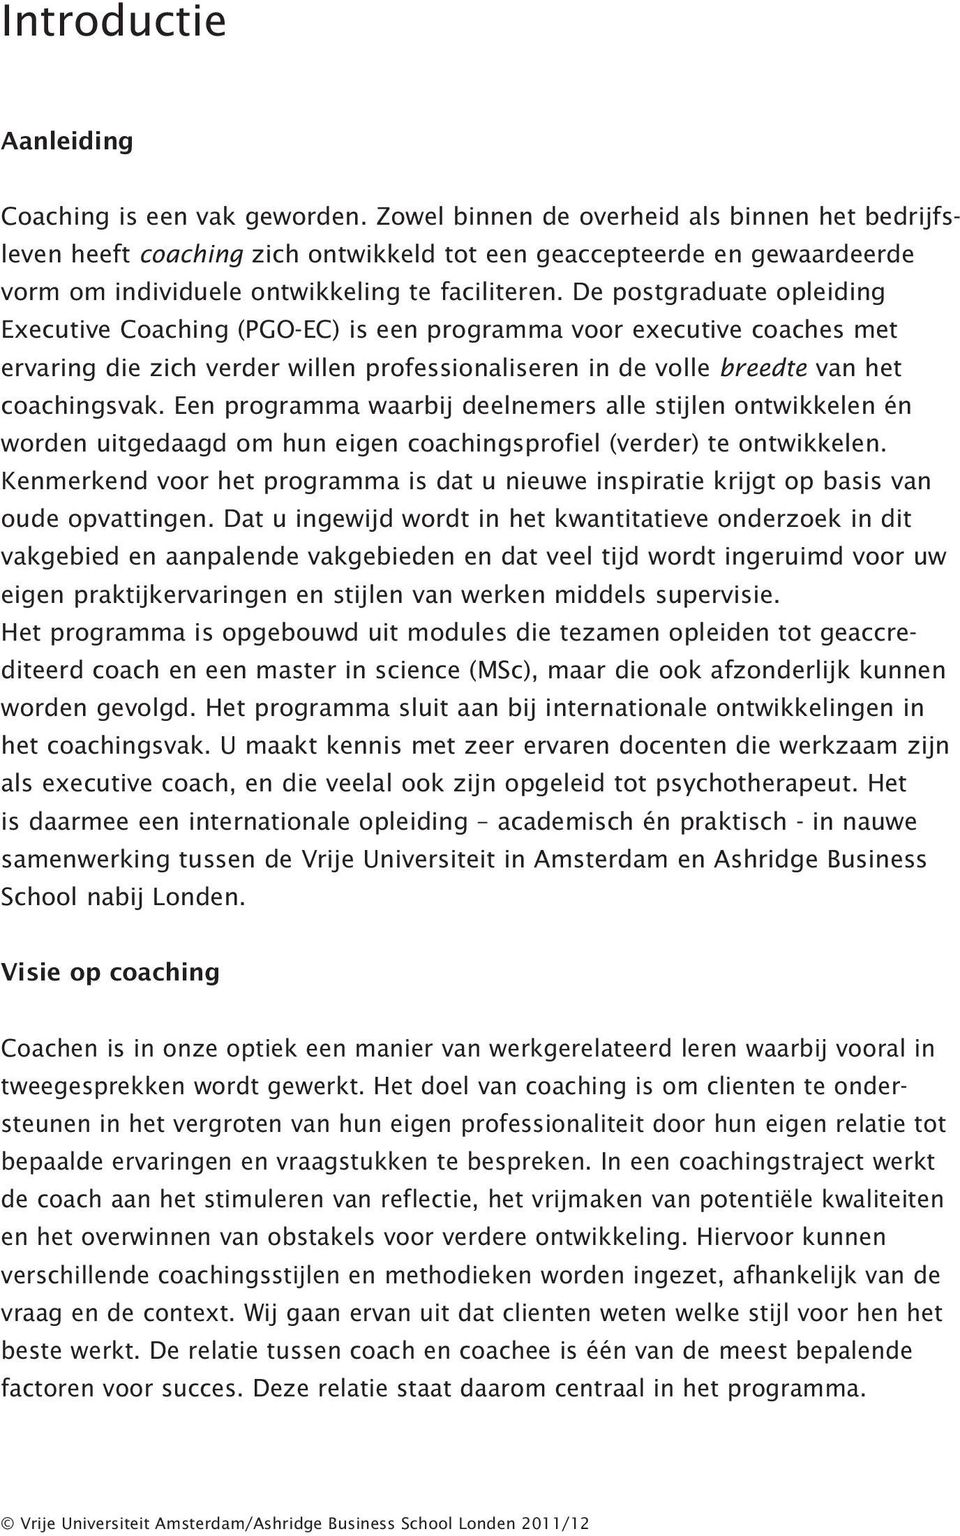 De postgraduate opleiding Executive Coaching (PGO-EC) is een programma voor executive coaches met ervaring die zich verder willen professionaliseren in de volle breedte van het coachingsvak.